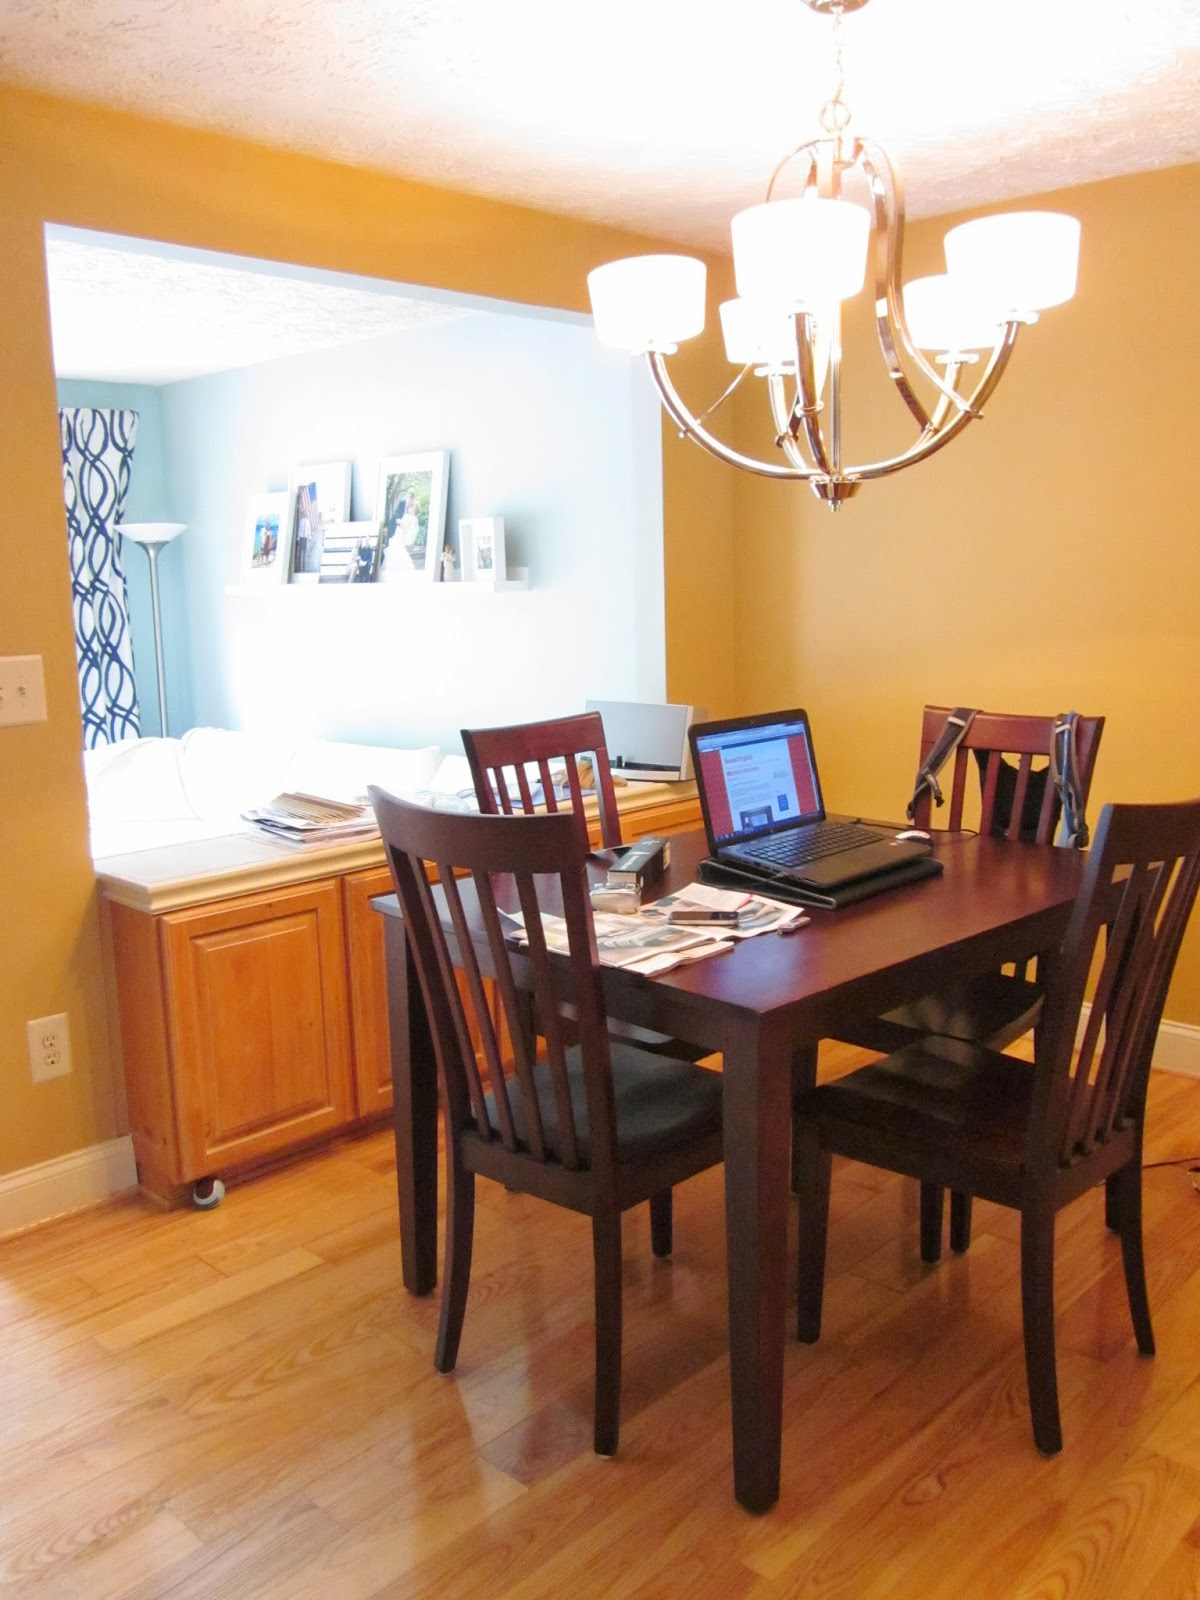 Ugly dining room gets a modern makeover | bonnieprojects.blogspot.com